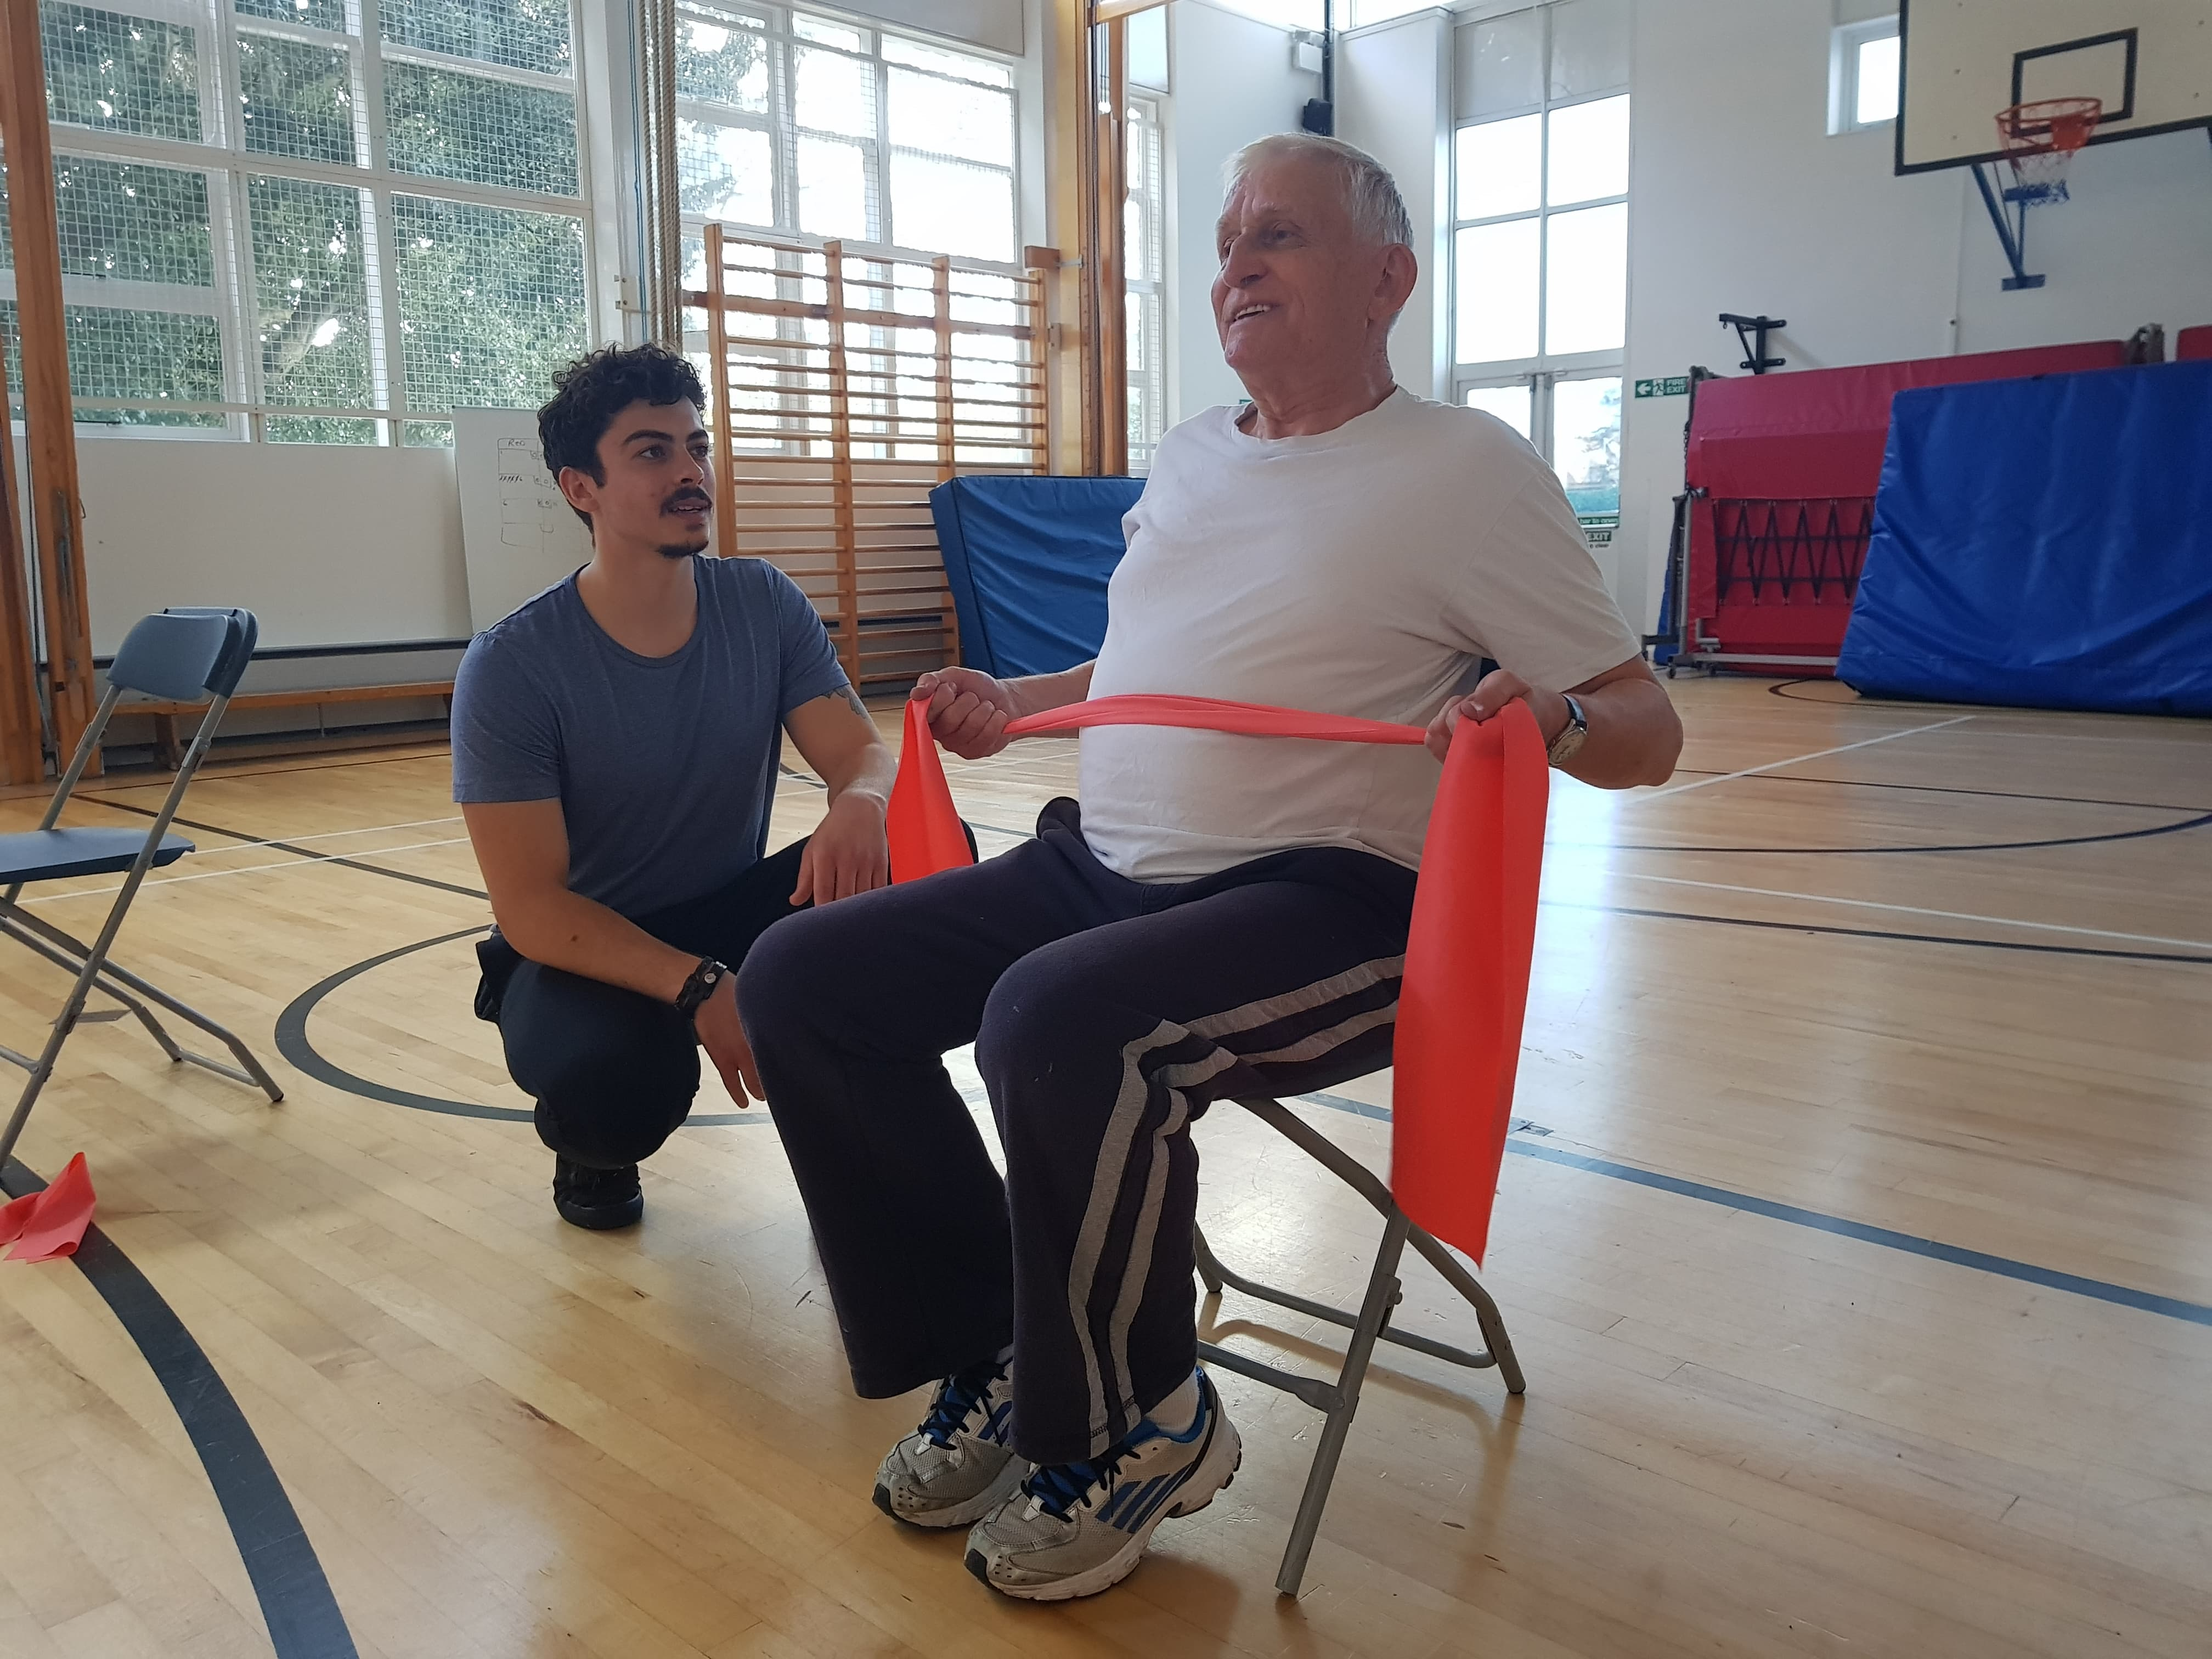 Harrison hekping Active Recovery client Paul with his exercises in the university's gym